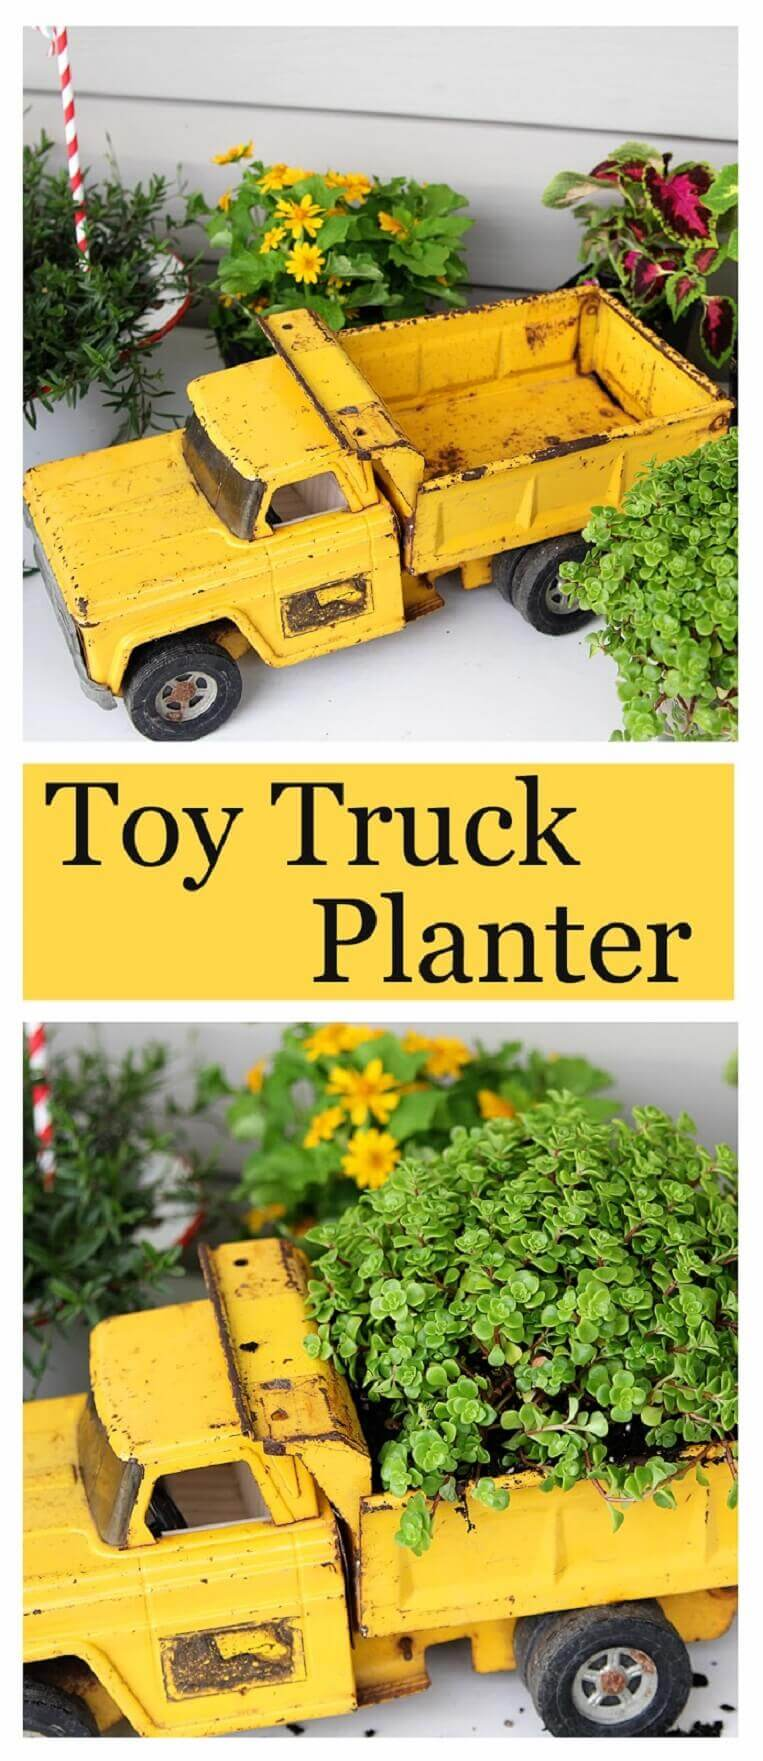 Repurposed Garden Container Ideas with a Toy Truck